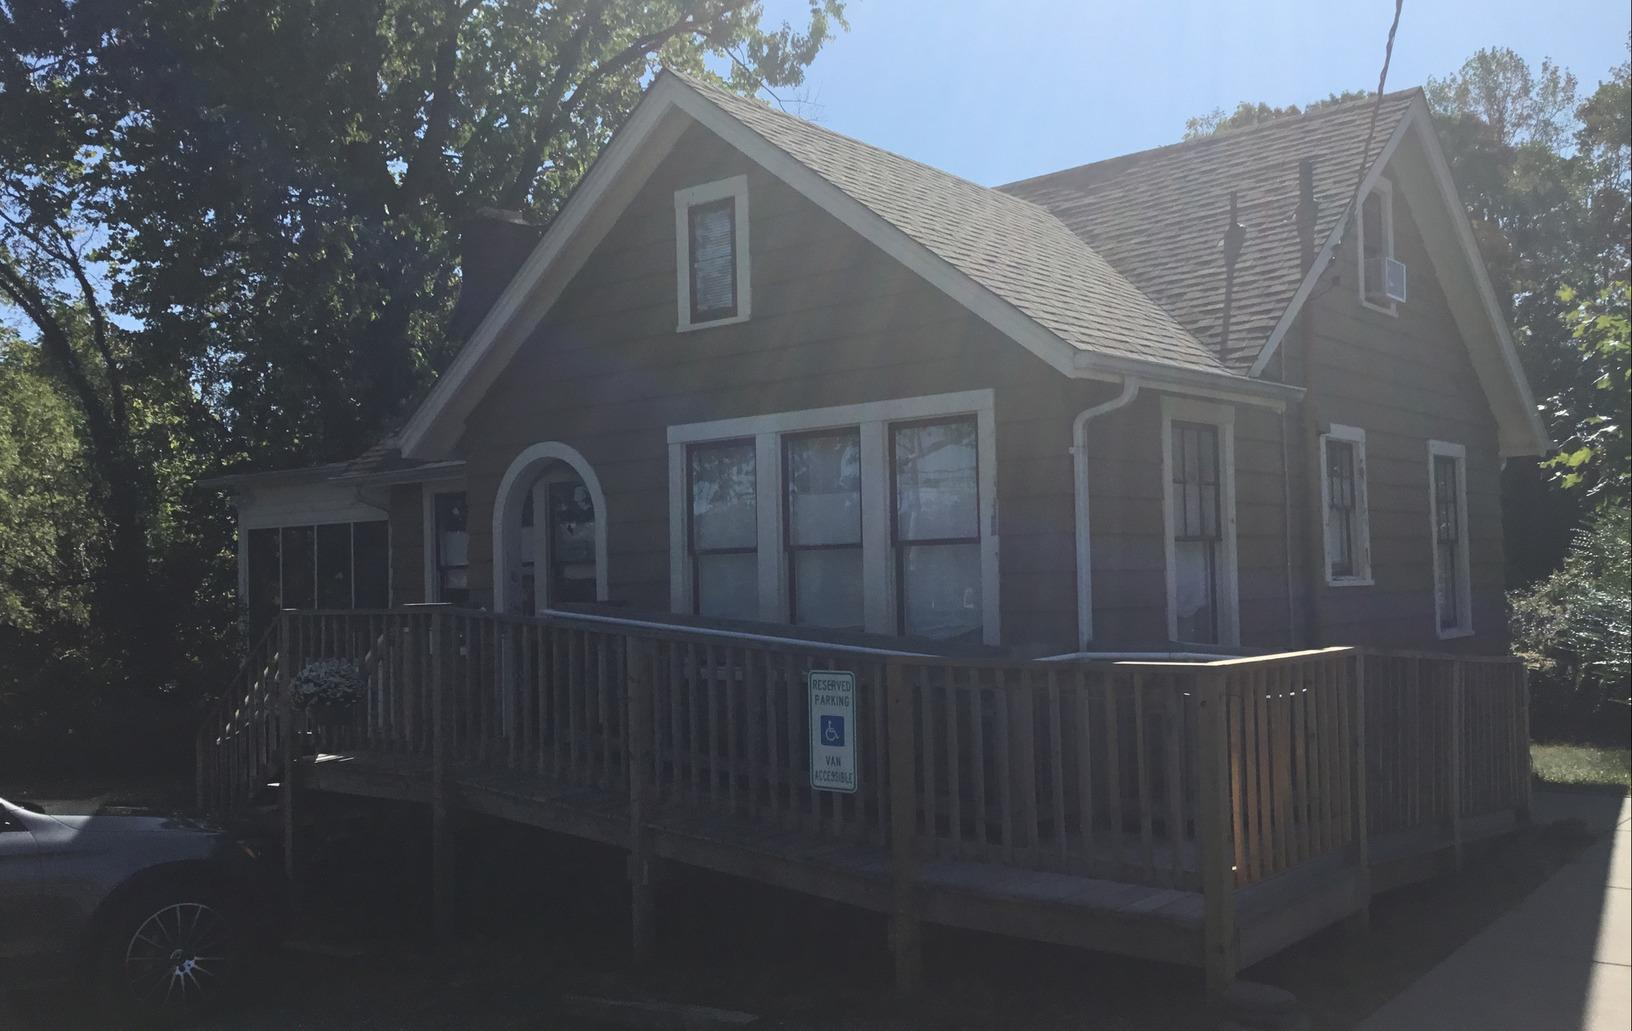 Charming house painted in Annapolis, MD - Before Photo